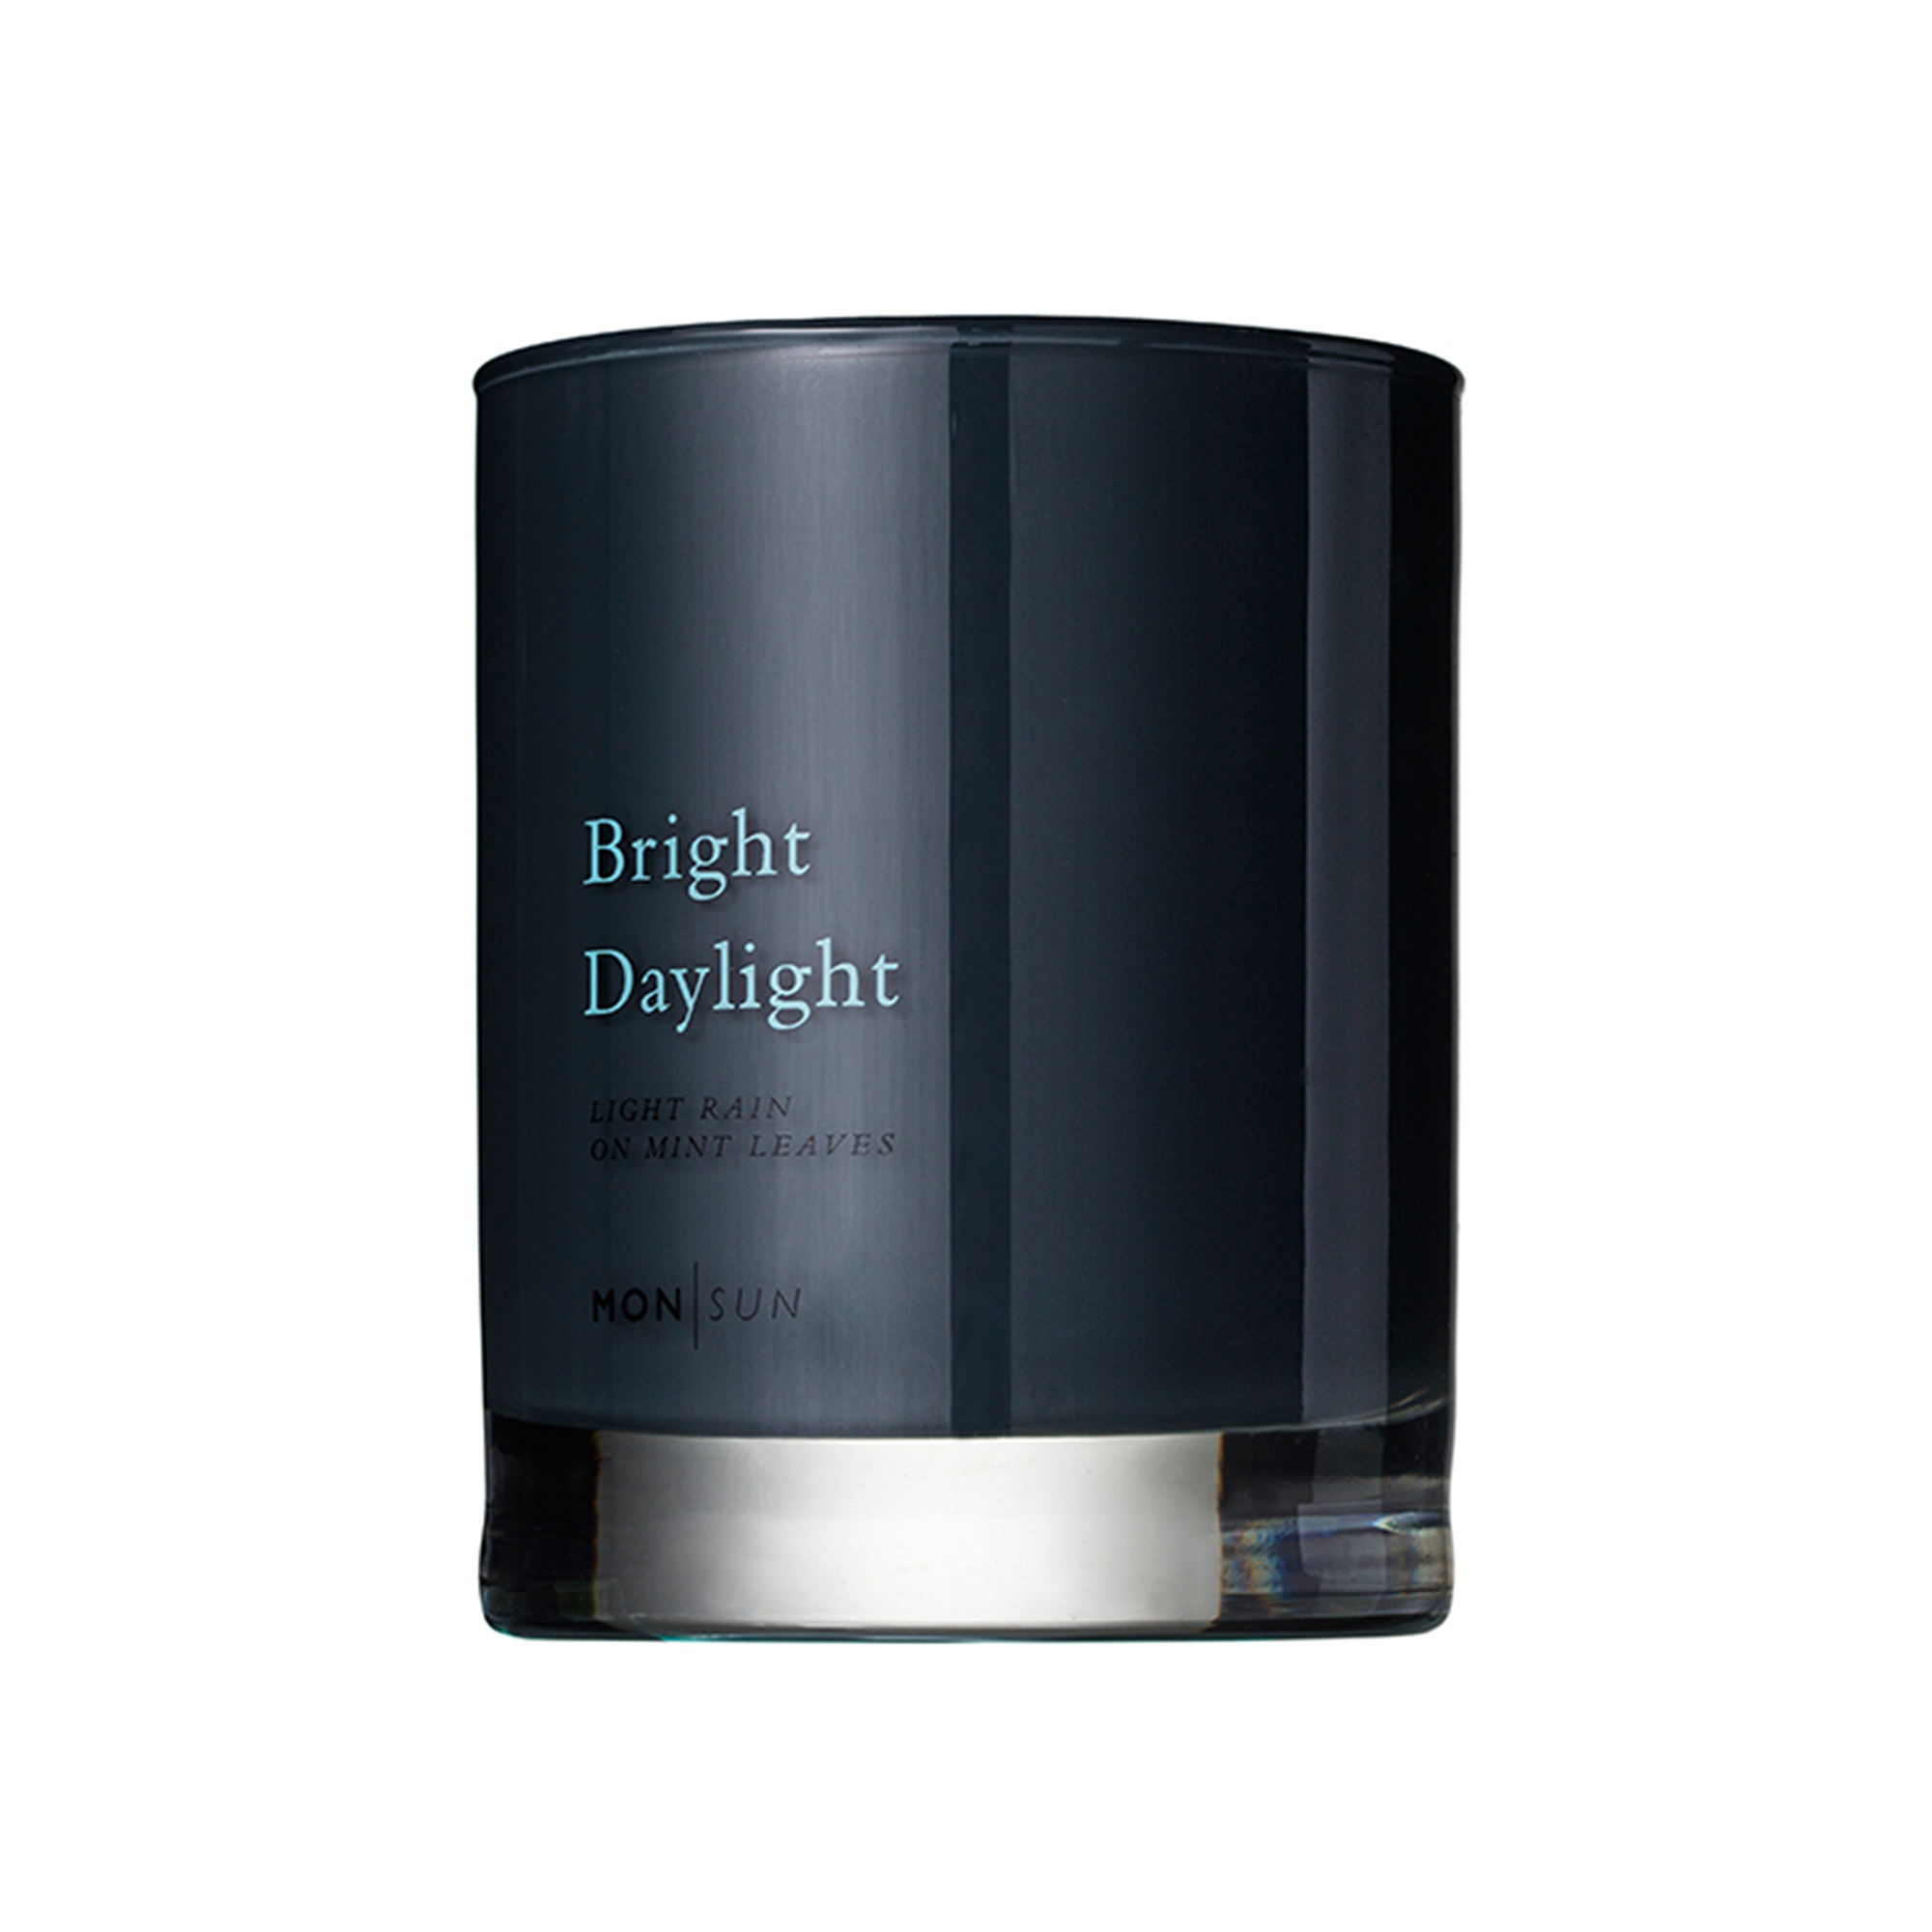 Bright Daylight Detox & Antioxidant Scented Candle 210 g